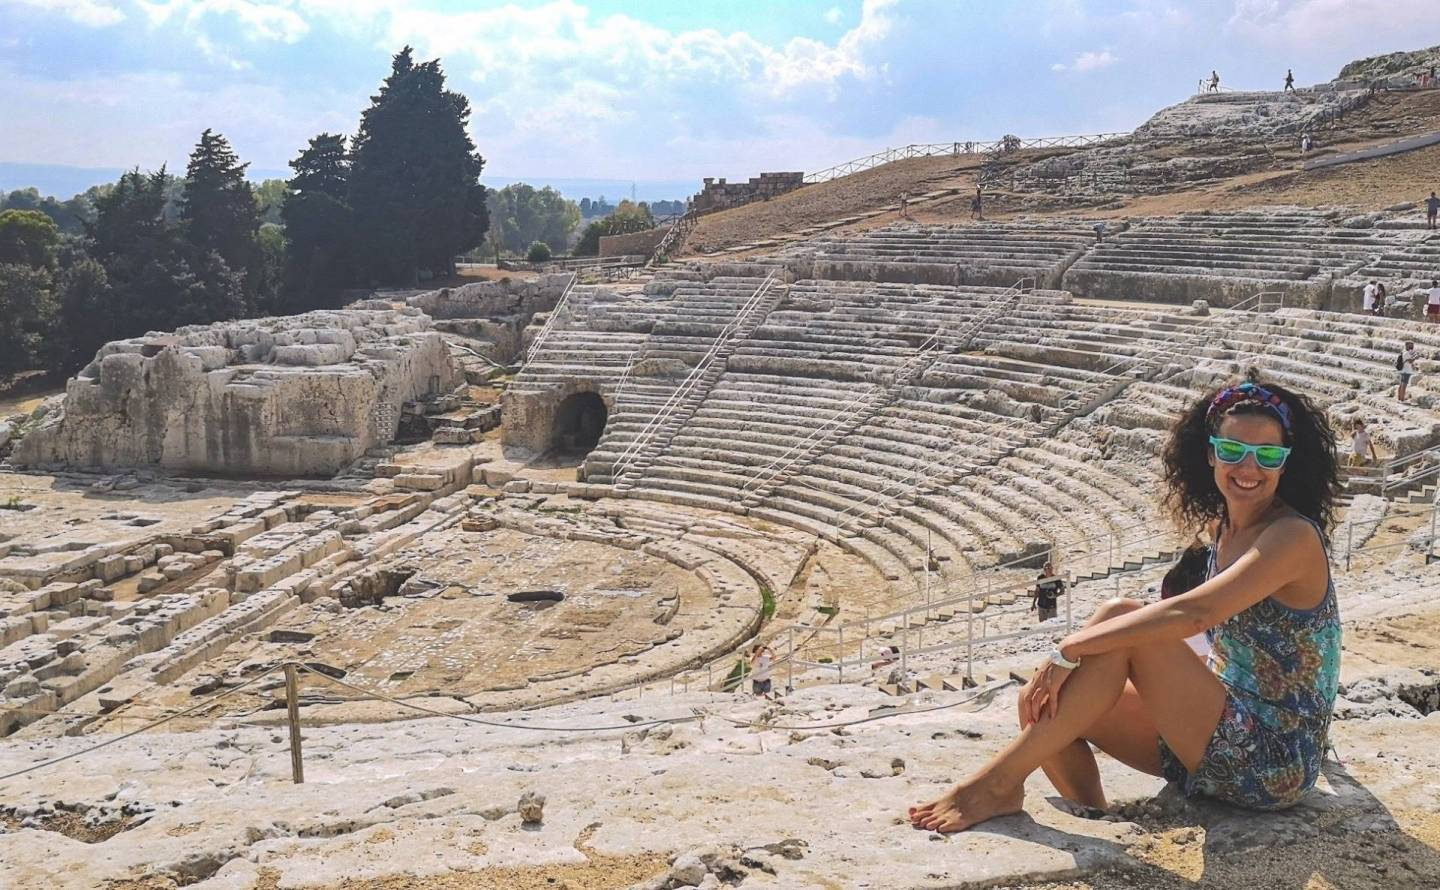 Teatro-Greco-Siracusa-The-Frilly-Diaries-una-settimana-in-sicilia